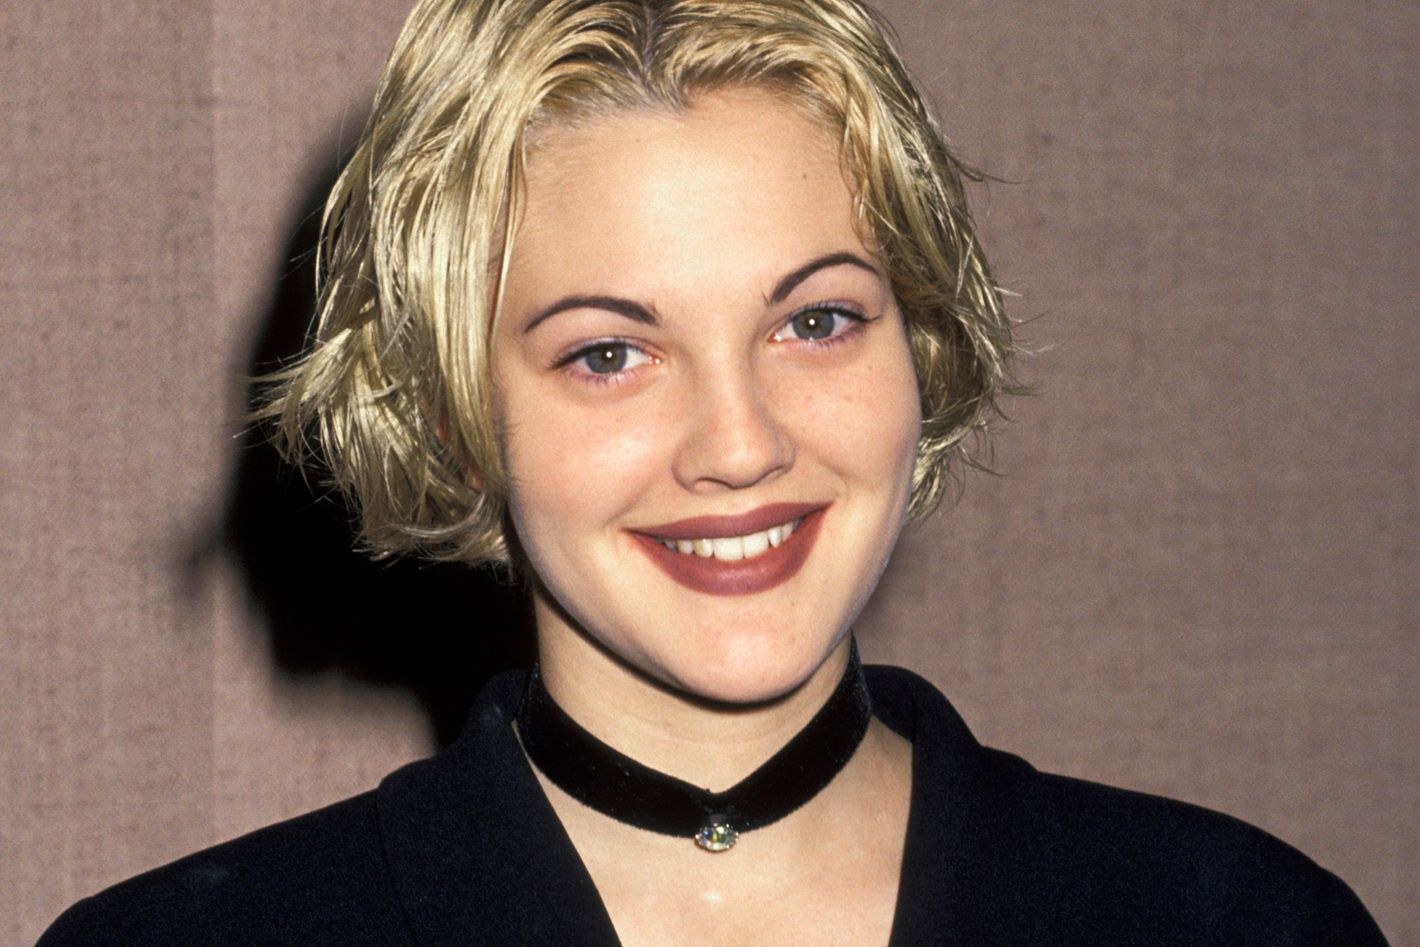 Drew barrymore movies young Drew Barrymore